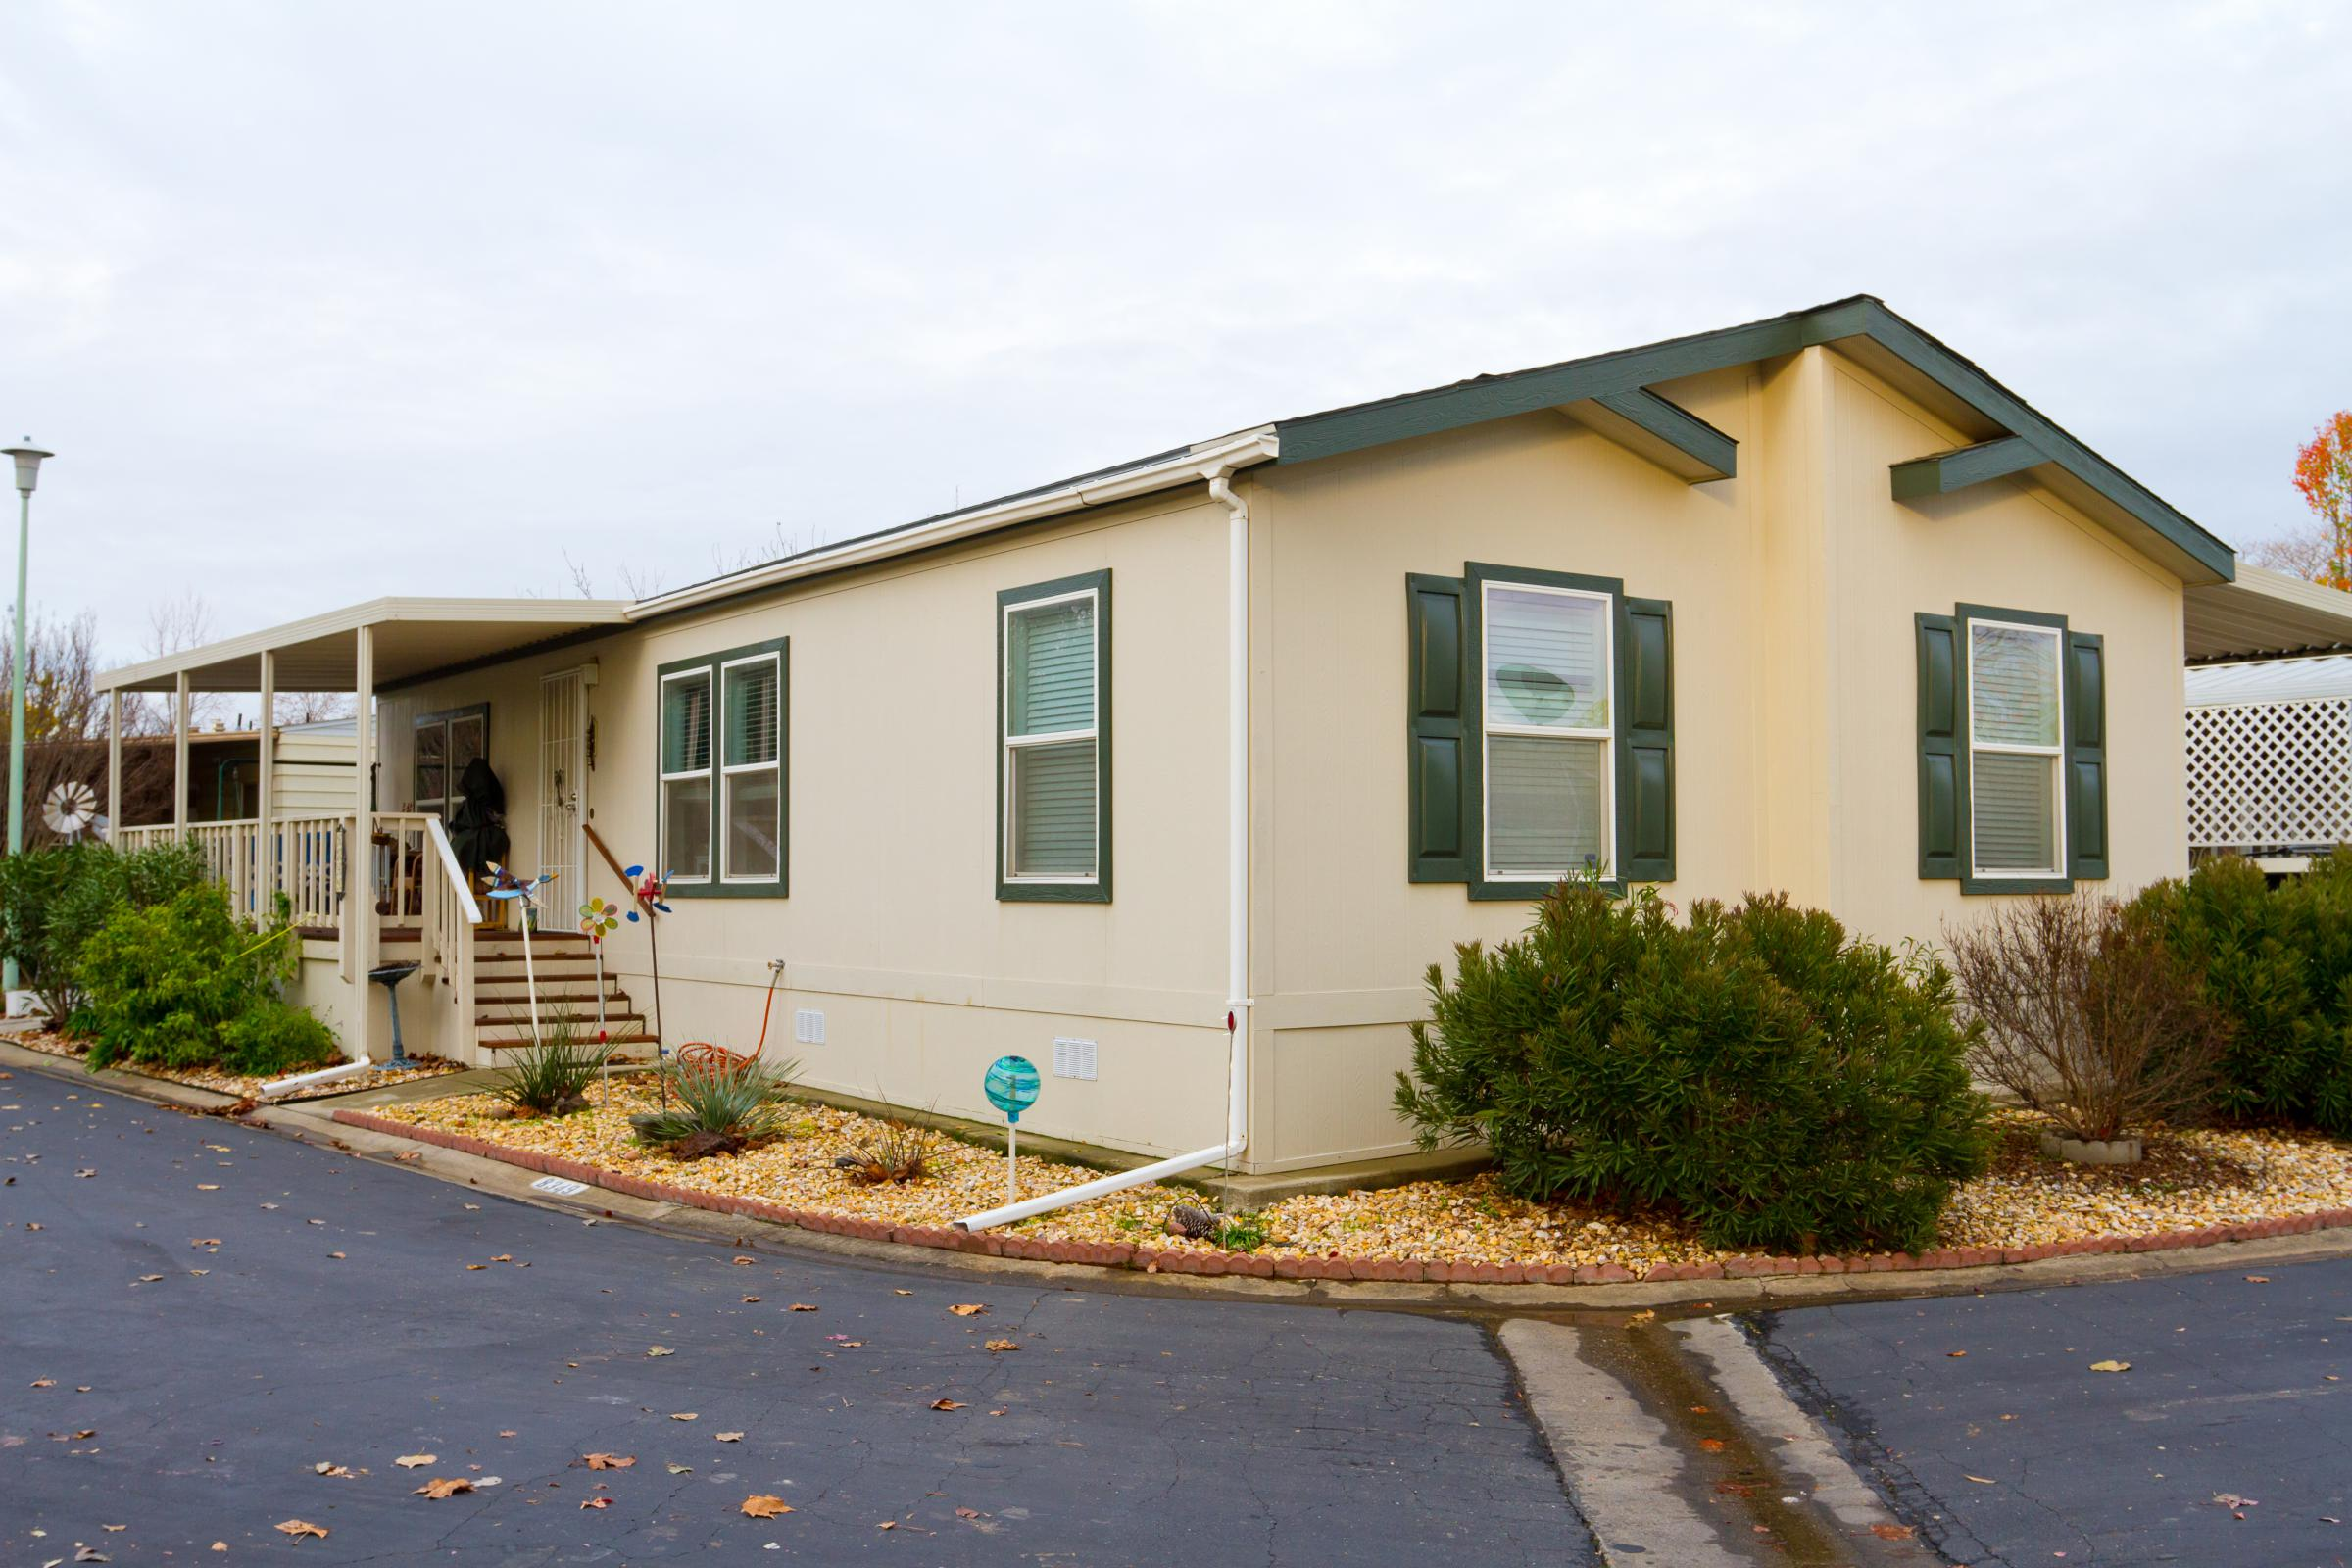 Budget Proposes Merging Small Manufactured Homes Commission With State Agency